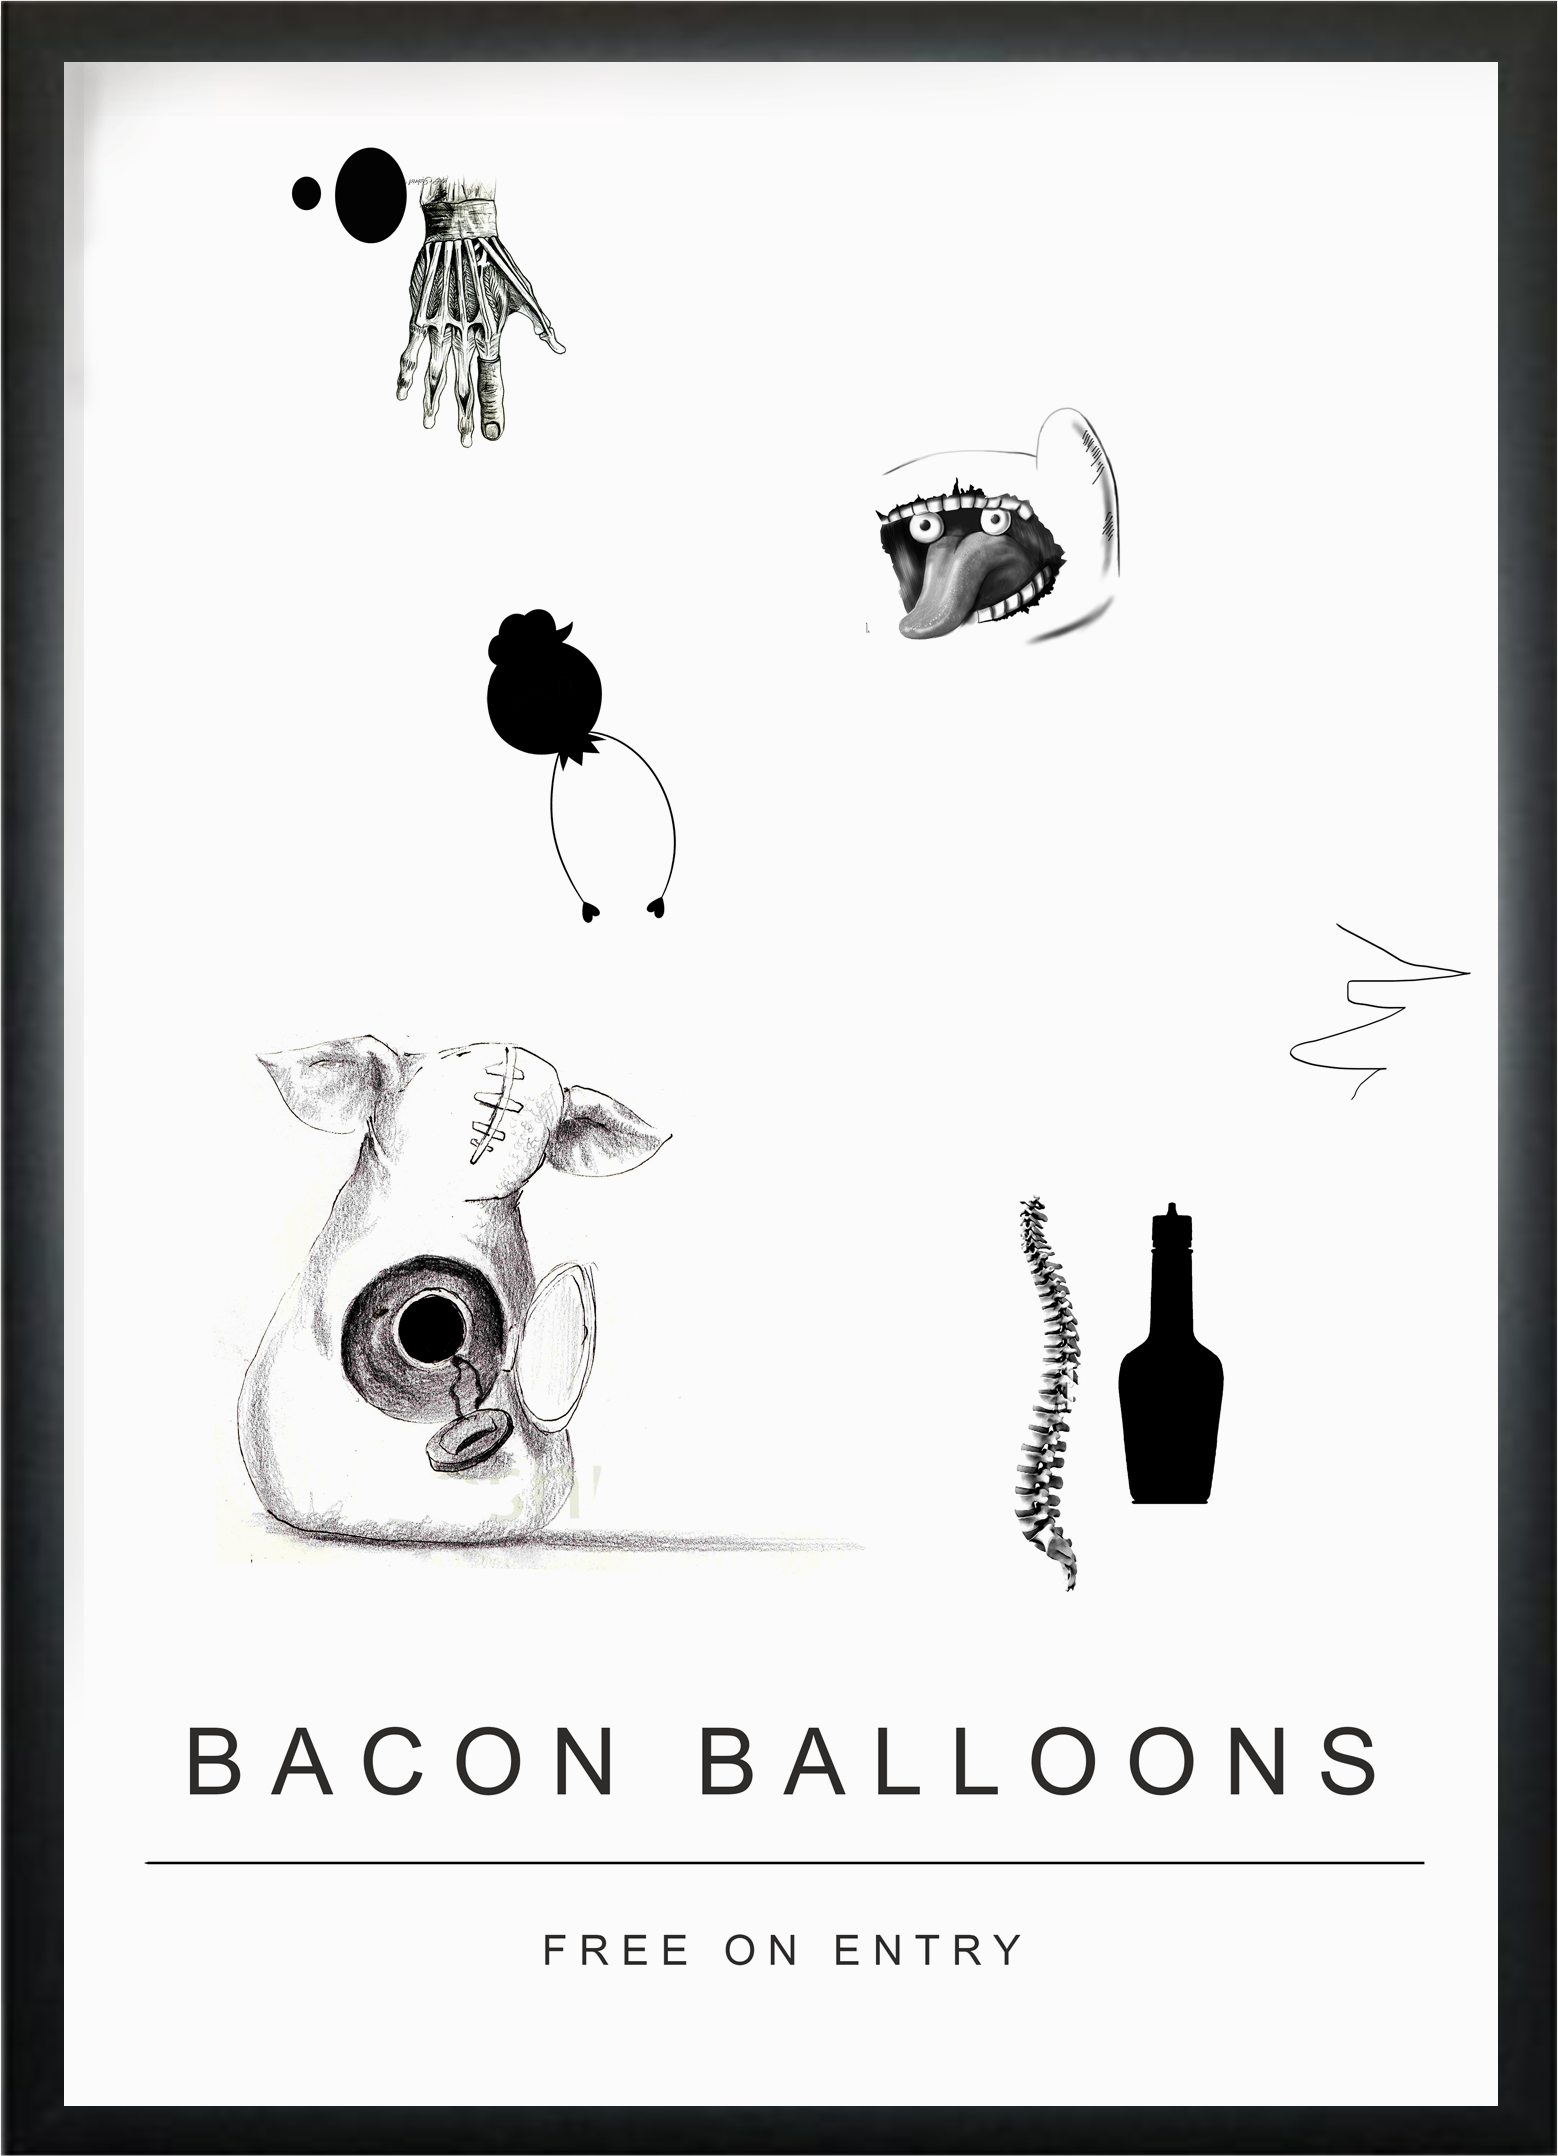 bacon balloons